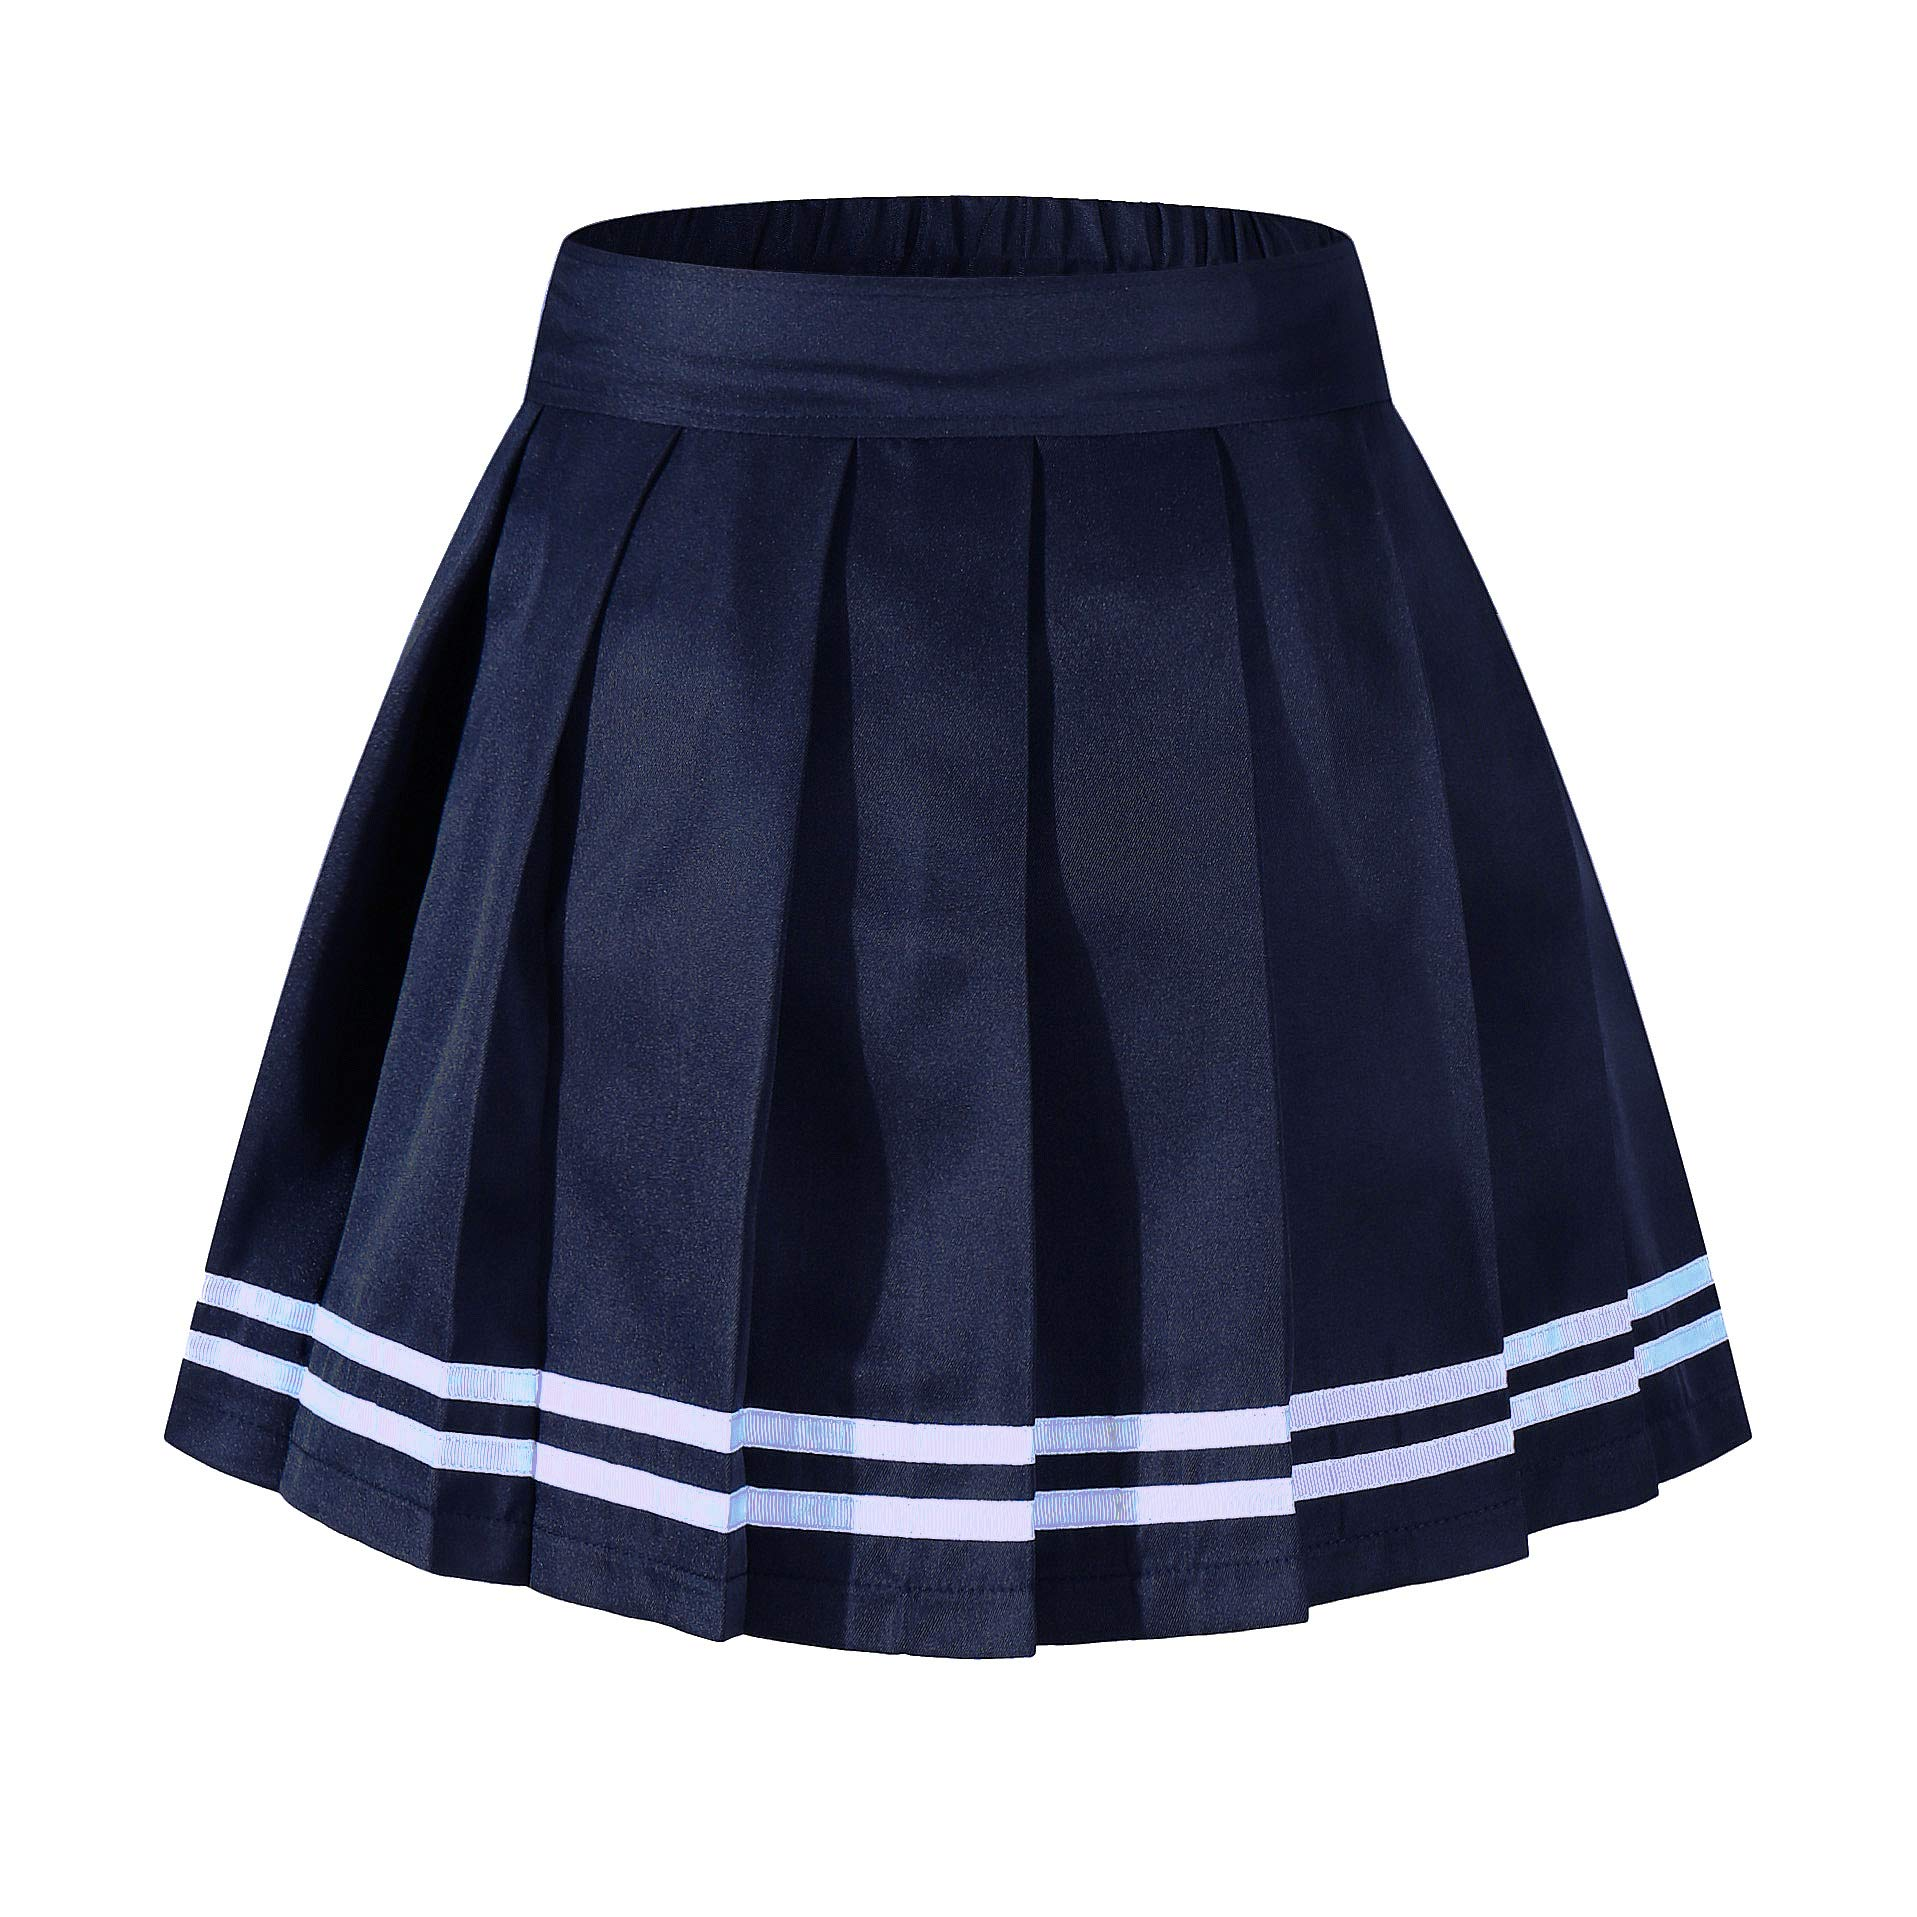 Beautifulfashionlife Girl's High Waist Pleated Mini Skirt Tennis A-line Elastic Shorts Navy White Stripes,S by Beautifulfashionlife